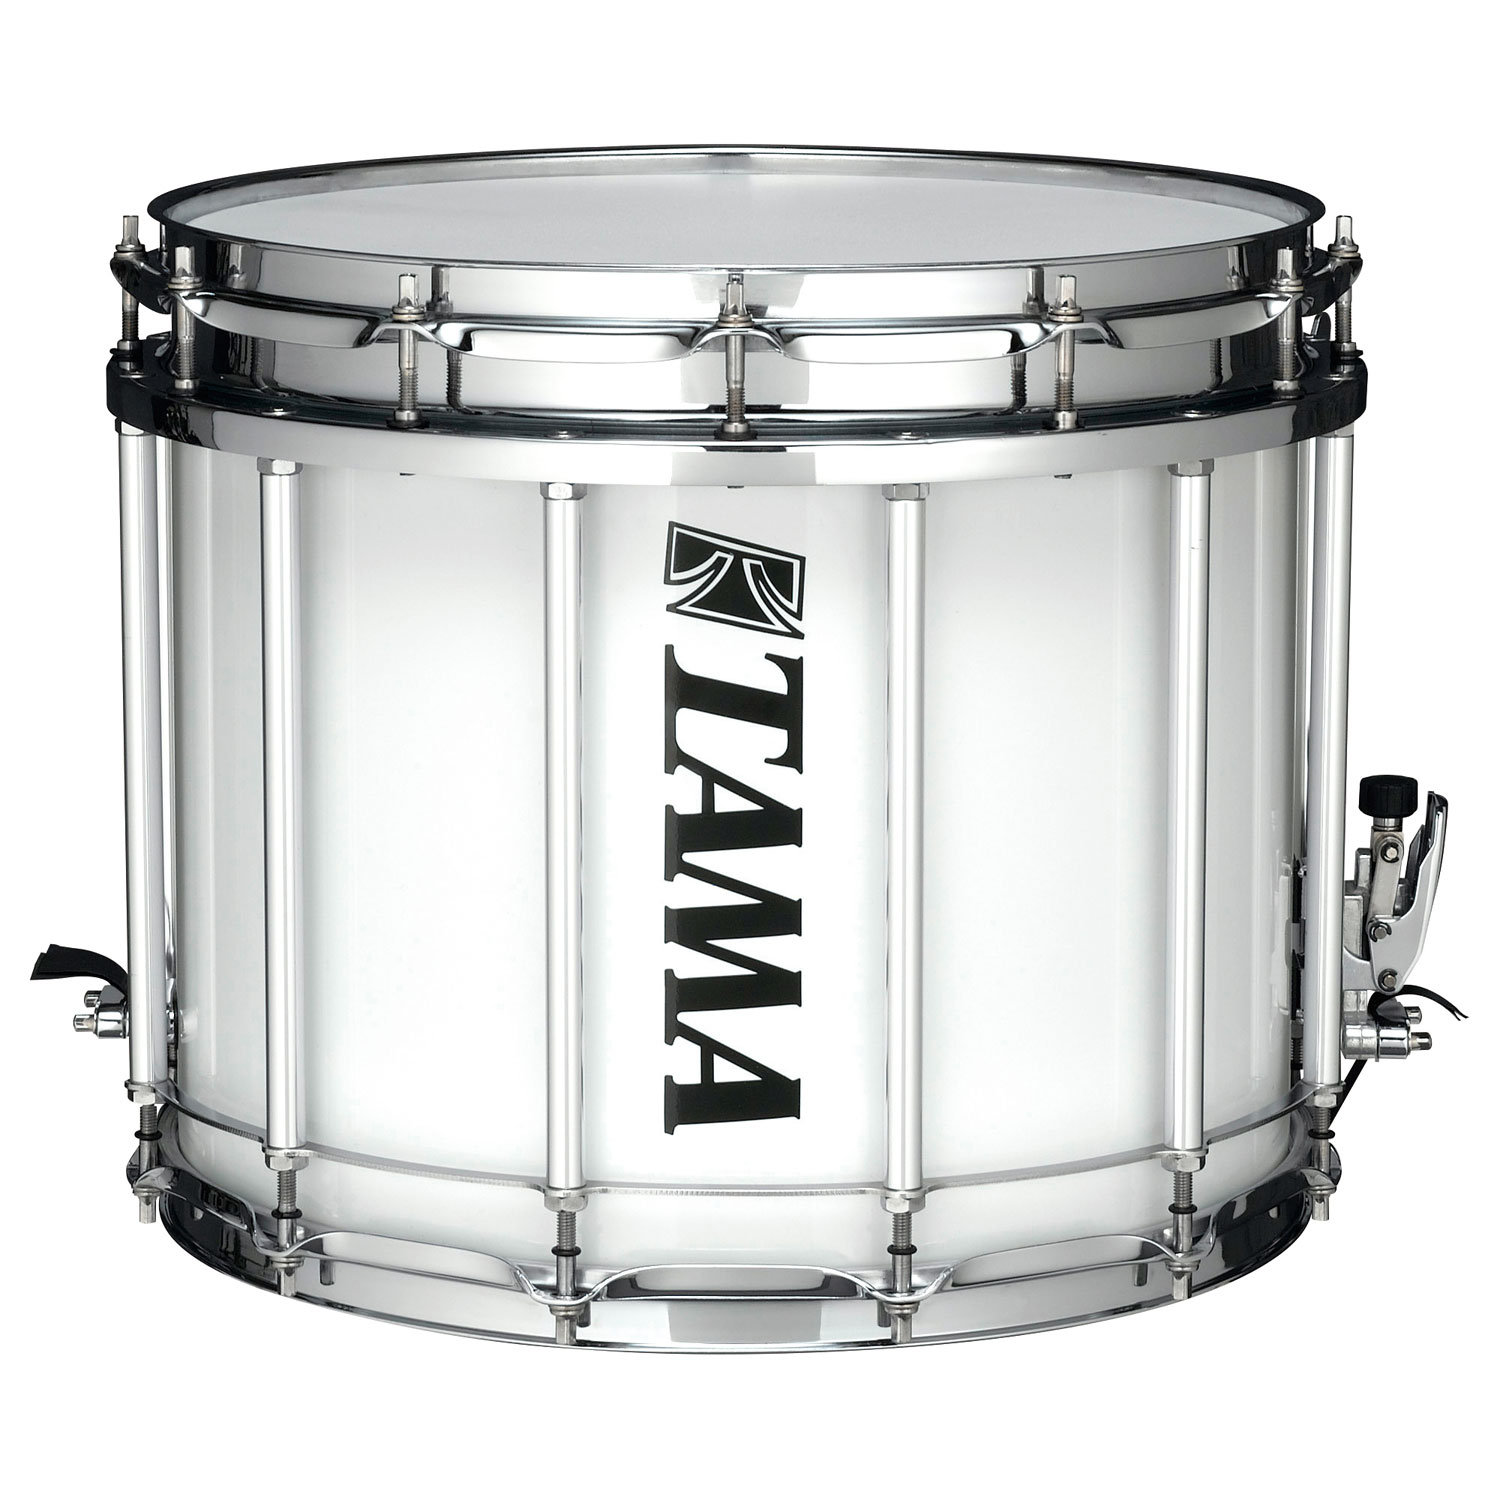 "Tama 12"" (Deep) x 14"" (Diameter) StarLight Marching Snare Drum in Sugar White"